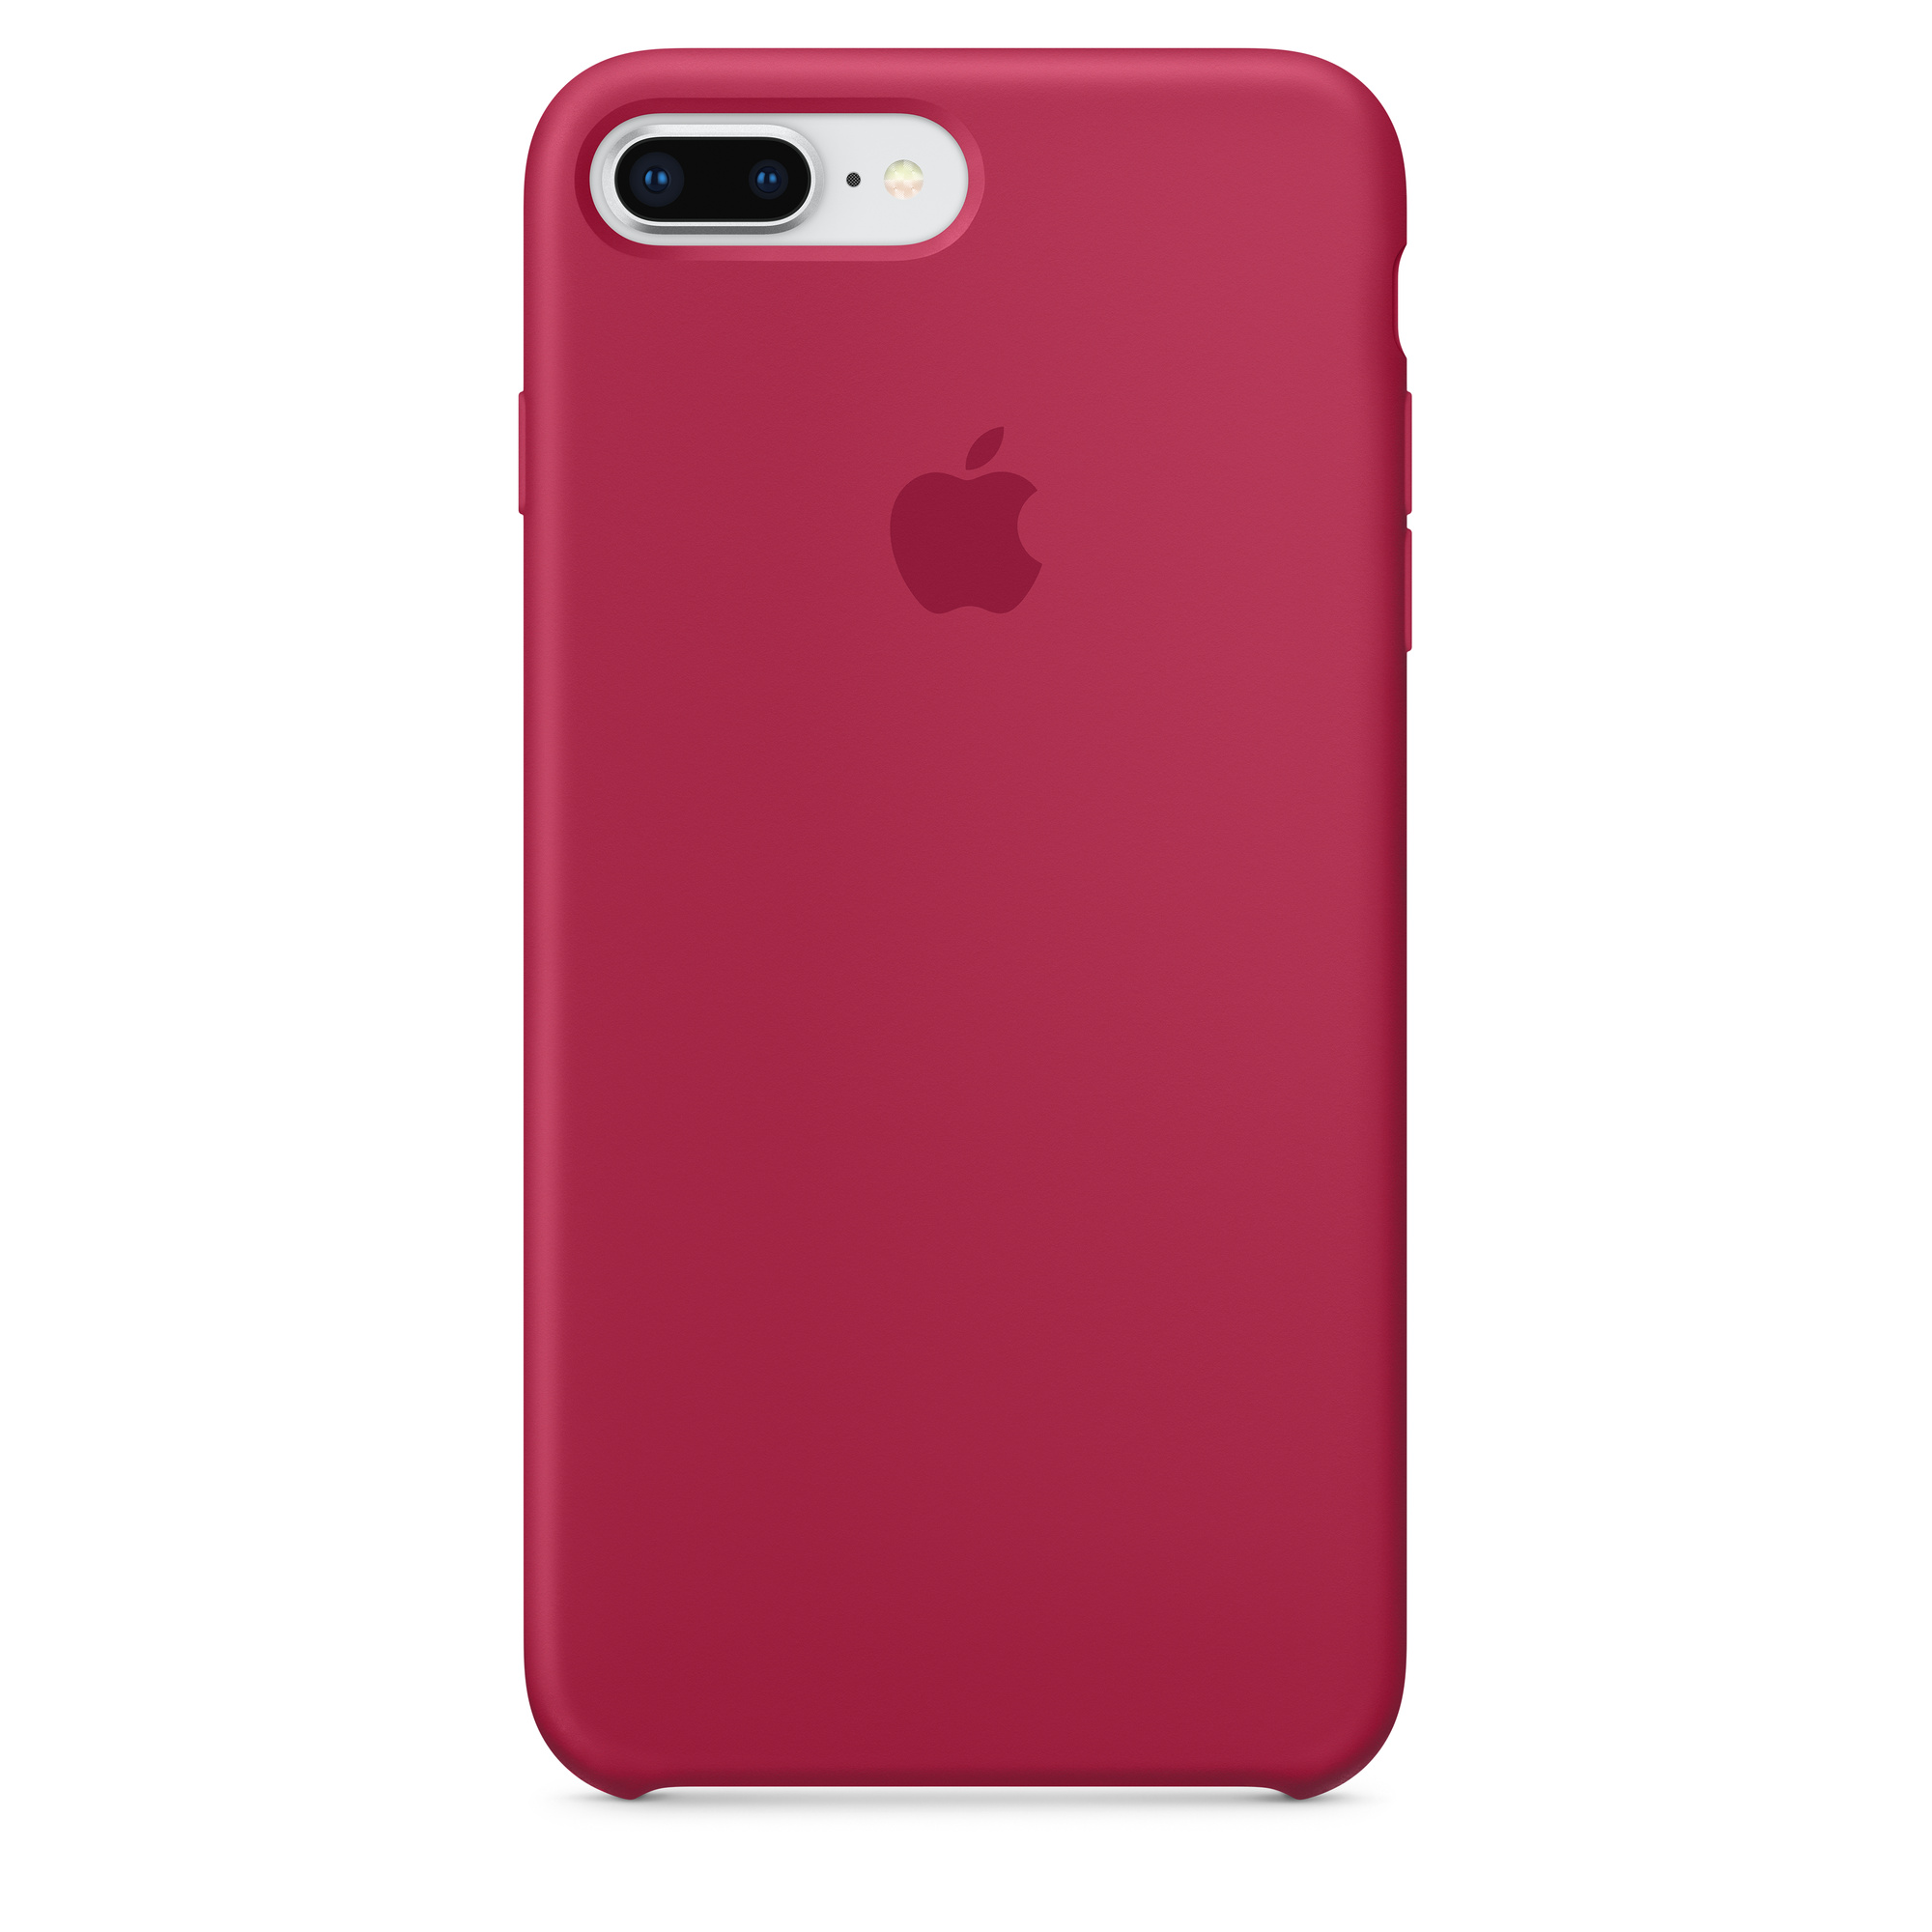 sports shoes f4b35 b612f iPhone 8 Plus / 7 Plus Silicone Case - Rose Red